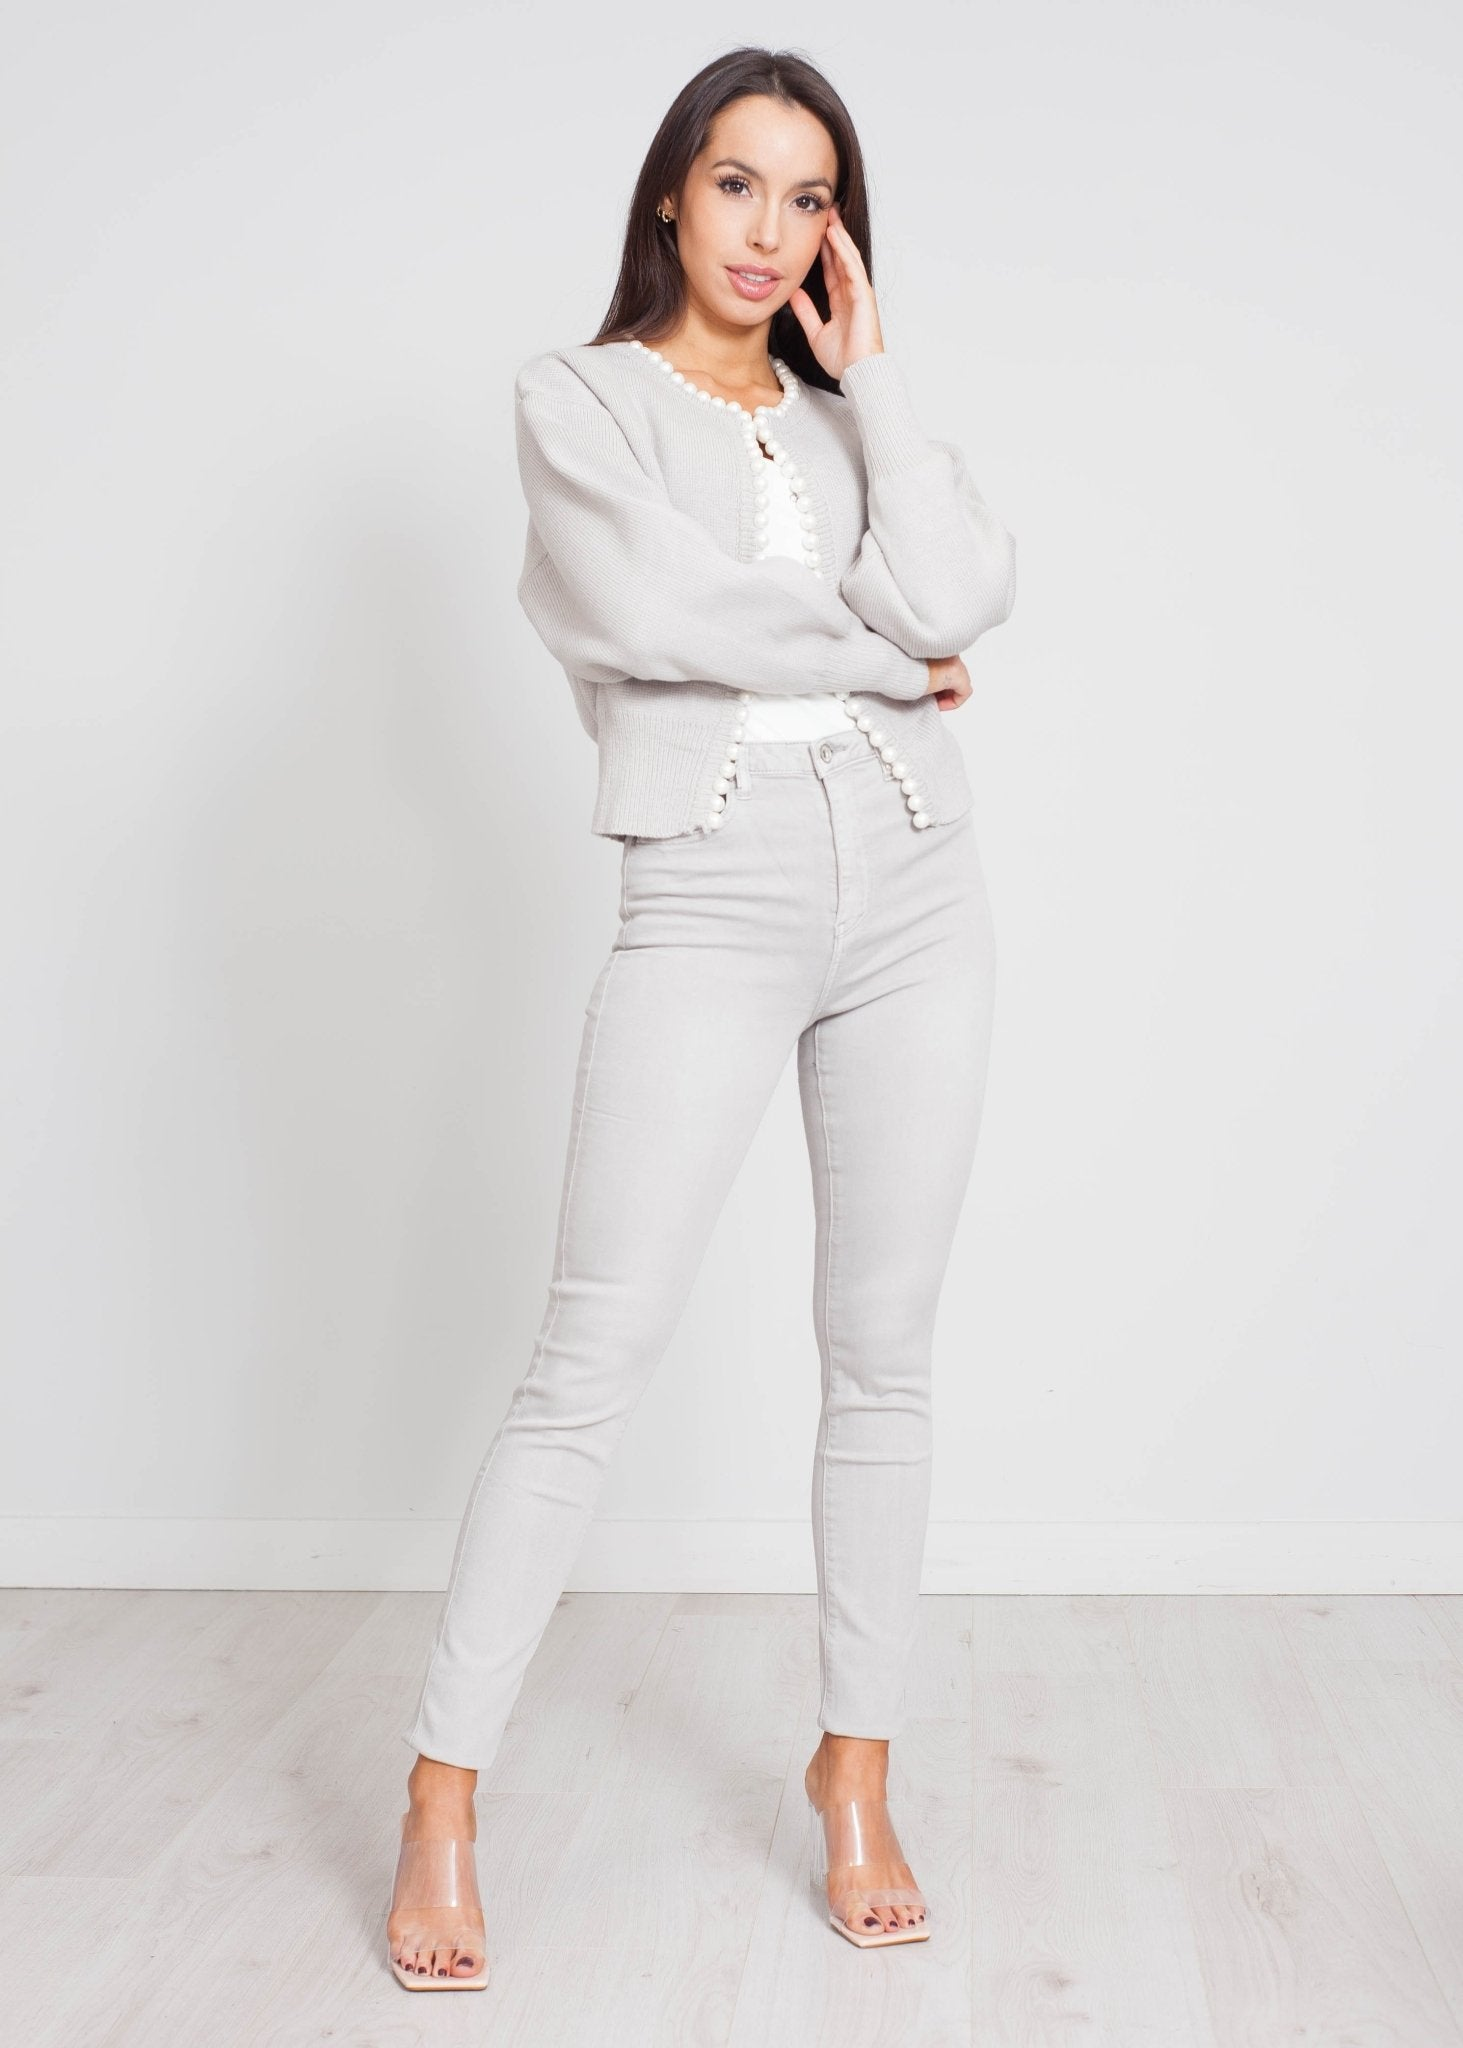 Yasmin Pearl Trim Cardigan In Grey - The Walk in Wardrobe